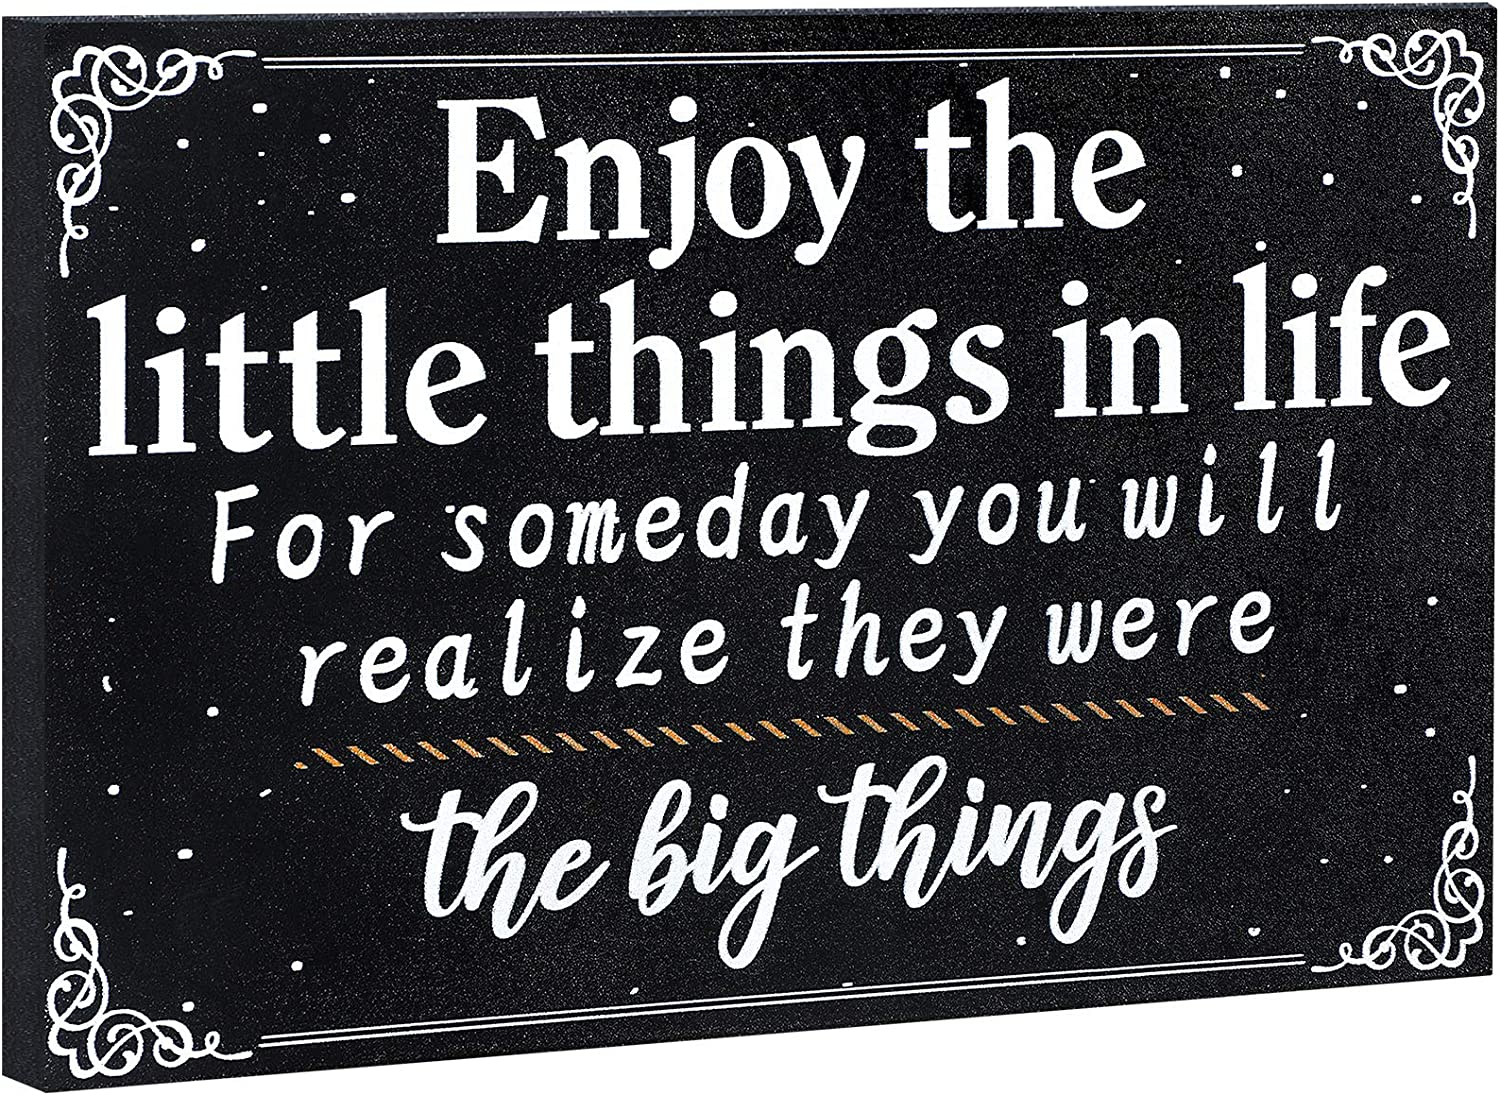 Jetec Grad 2021 Sign Enjoy The Little Things Wooden Wall Farmhouse Decorative Inspirational Signs, Funny Positive Wall Plaque Rustic for Happy Life Table Decor for Home Room Office 7.87 x 5.1 Inch